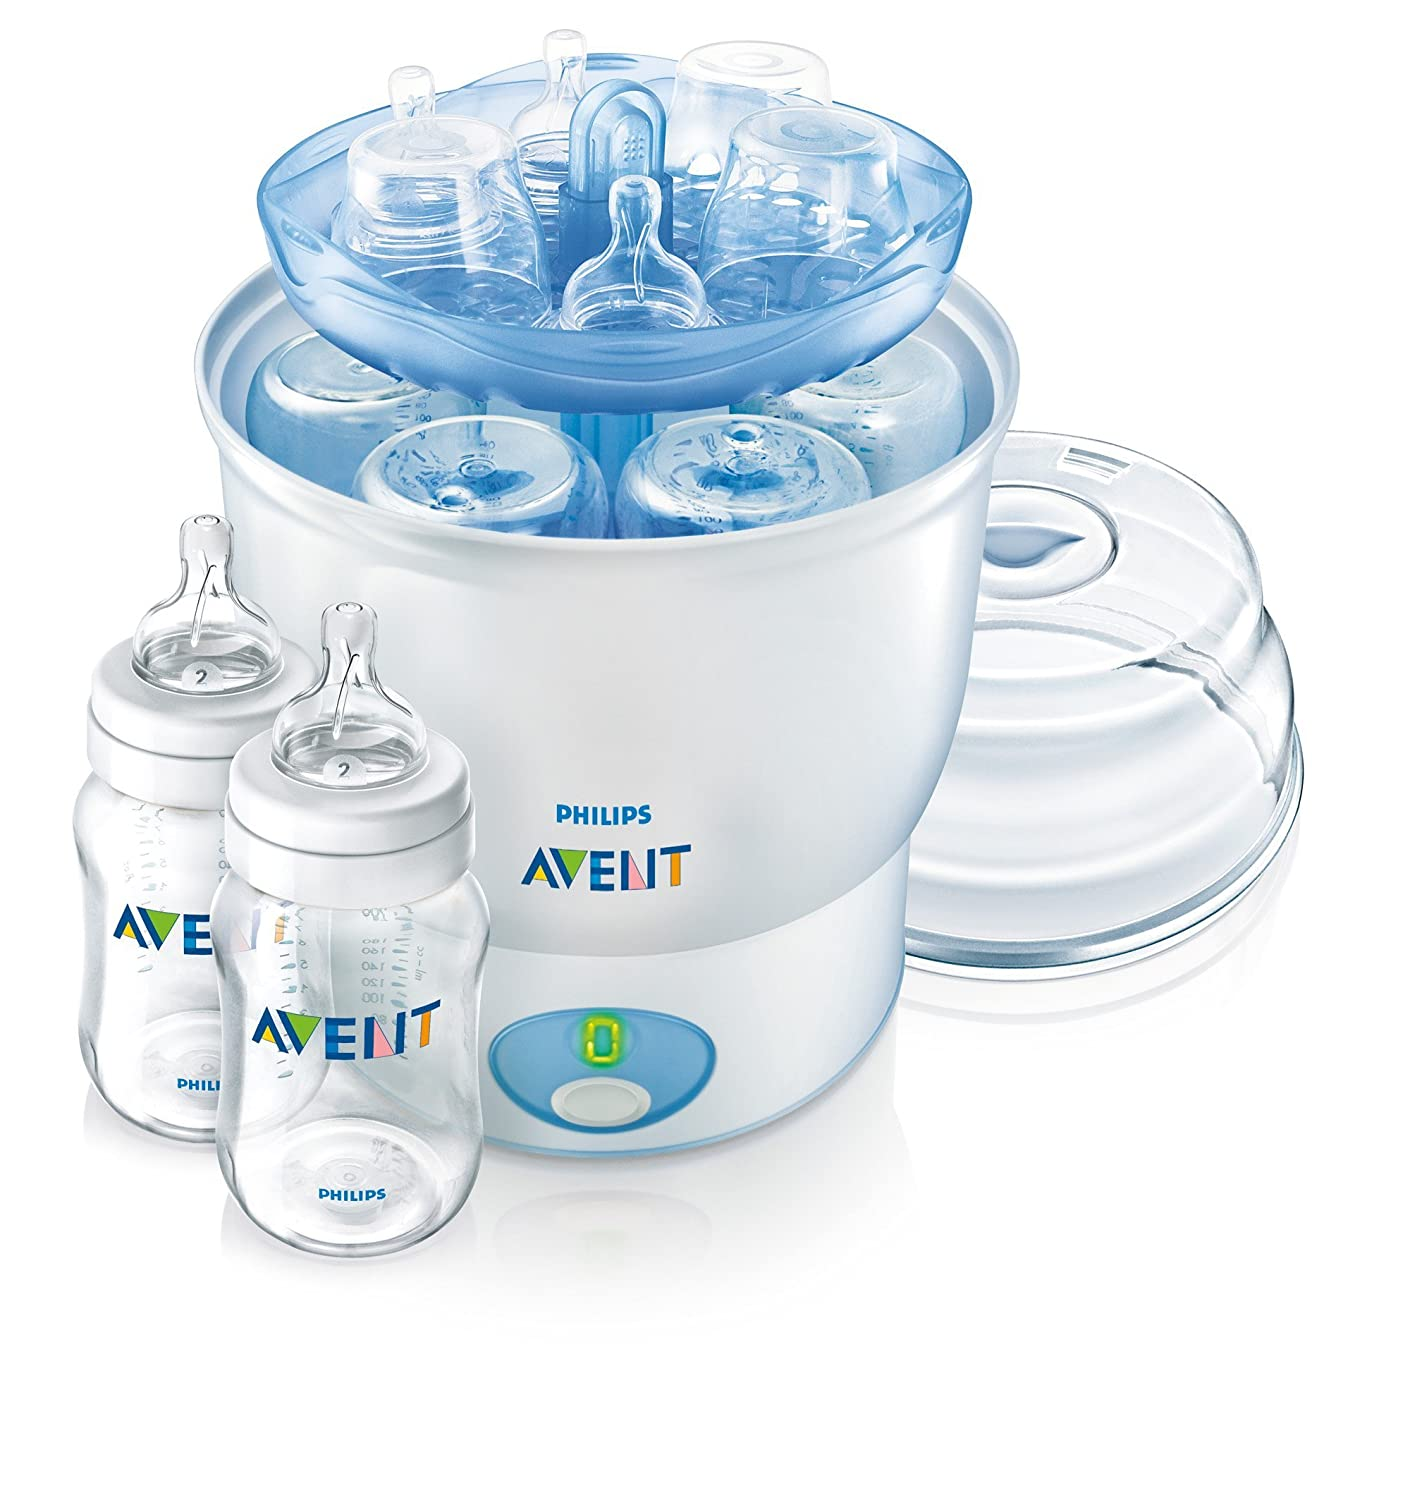 Amazon.com: Philips AVENT Esterilizador iQ24 con 2 botellas ...